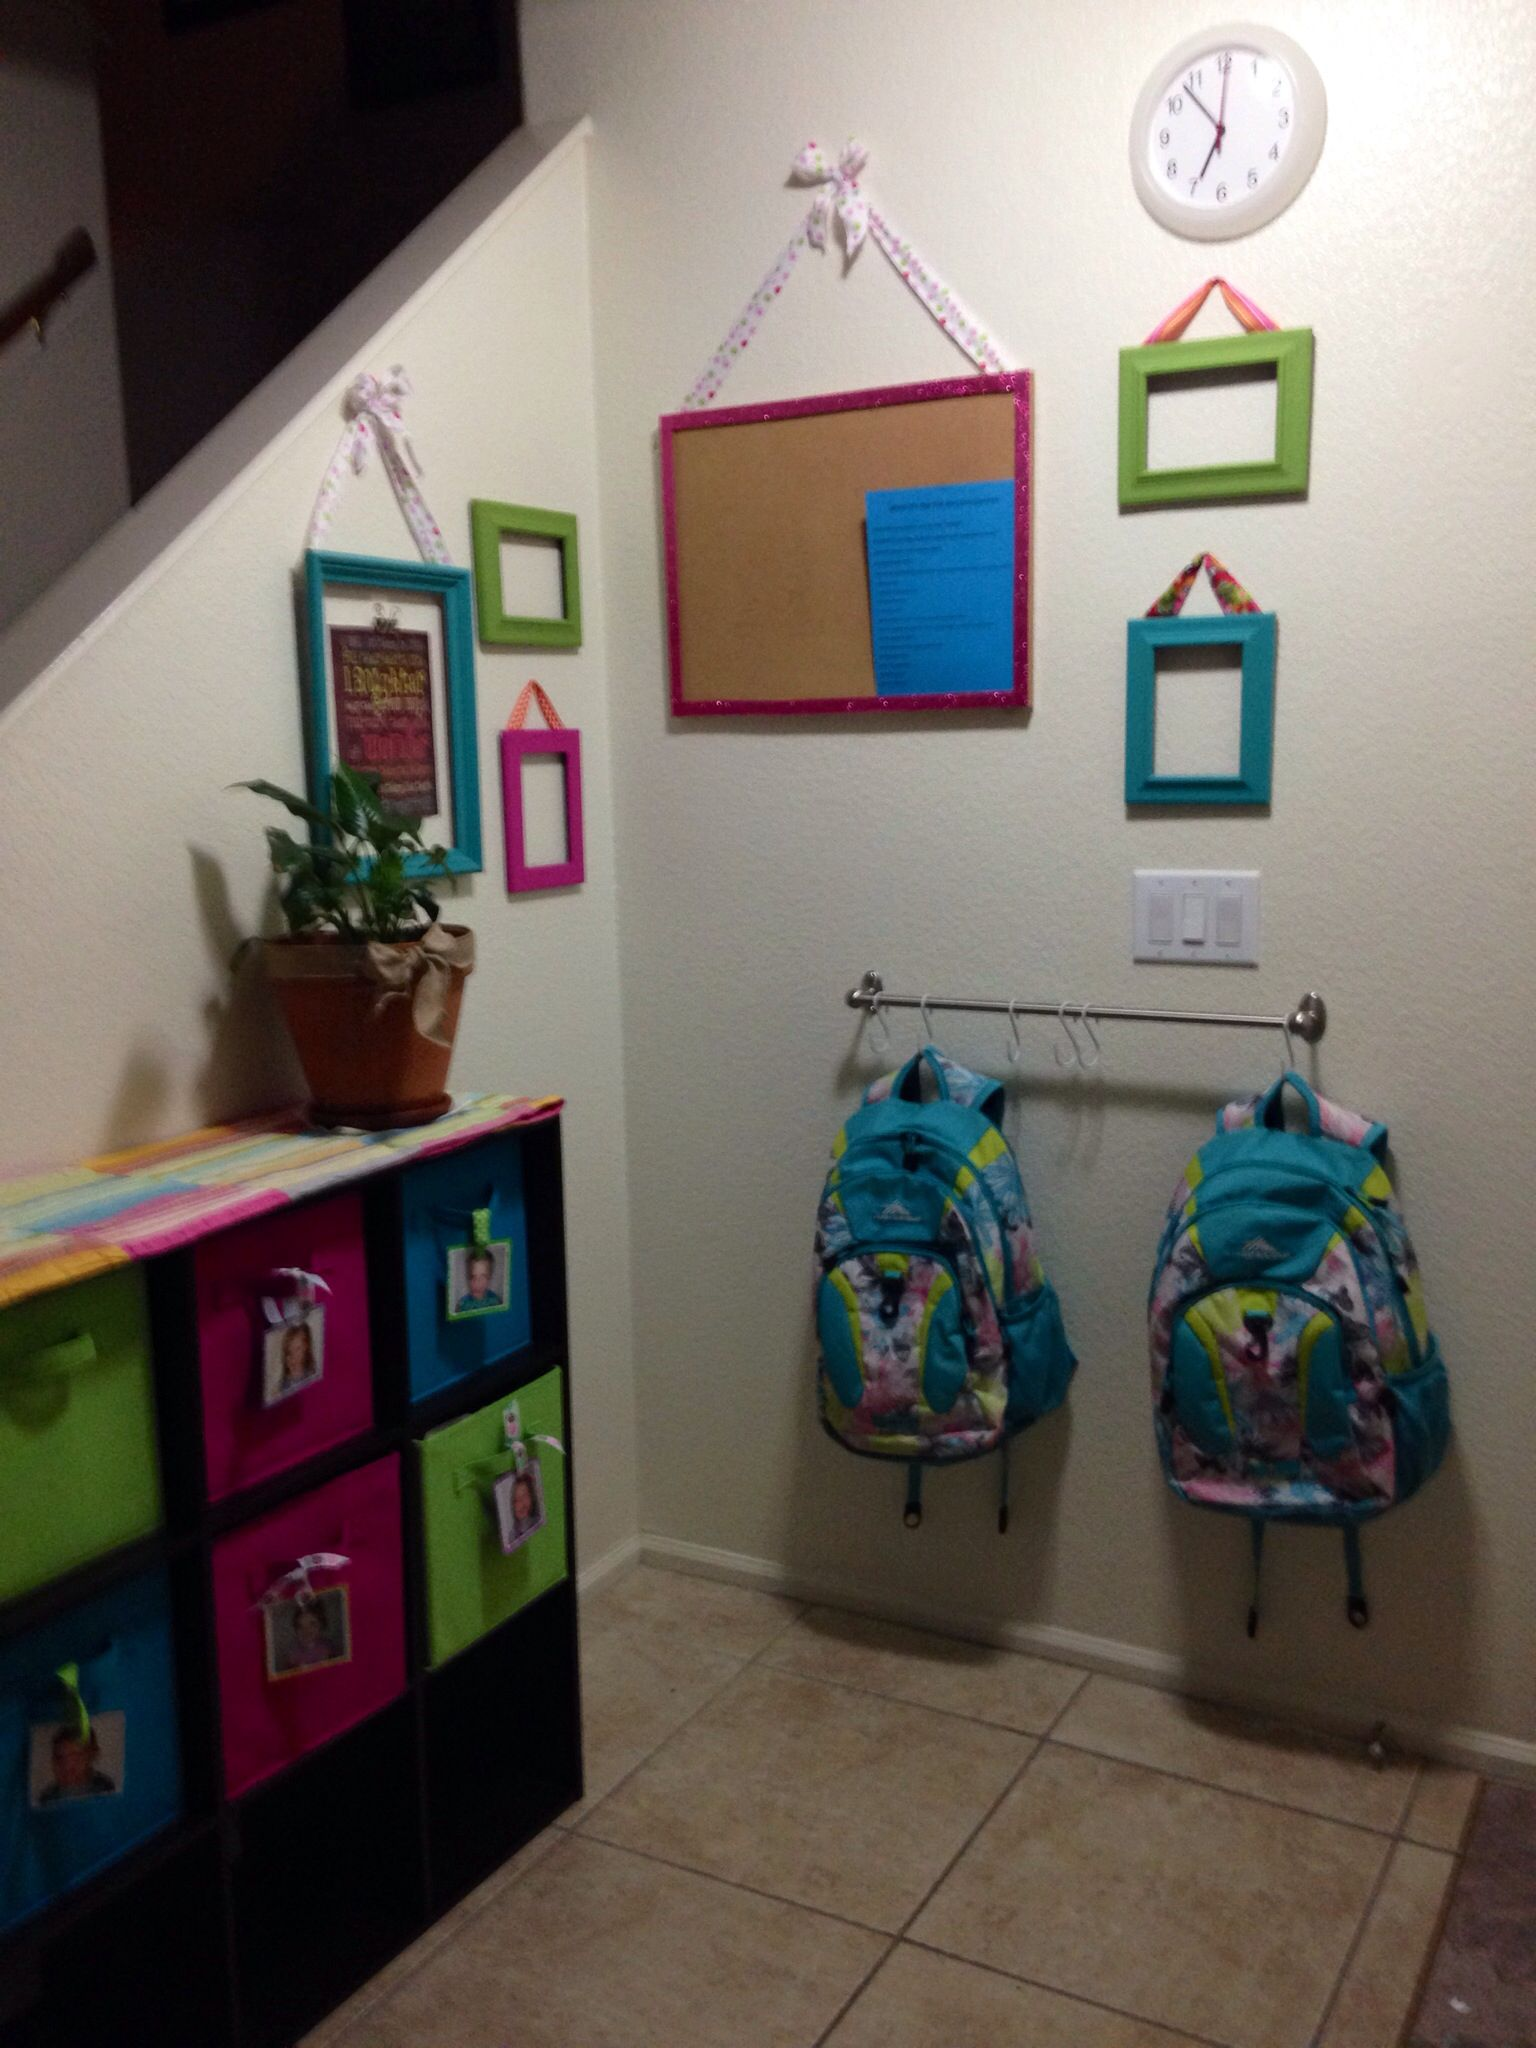 Small Entry Area Storage Great Idea For Daycare Or Preschool - Home daycare design ideas